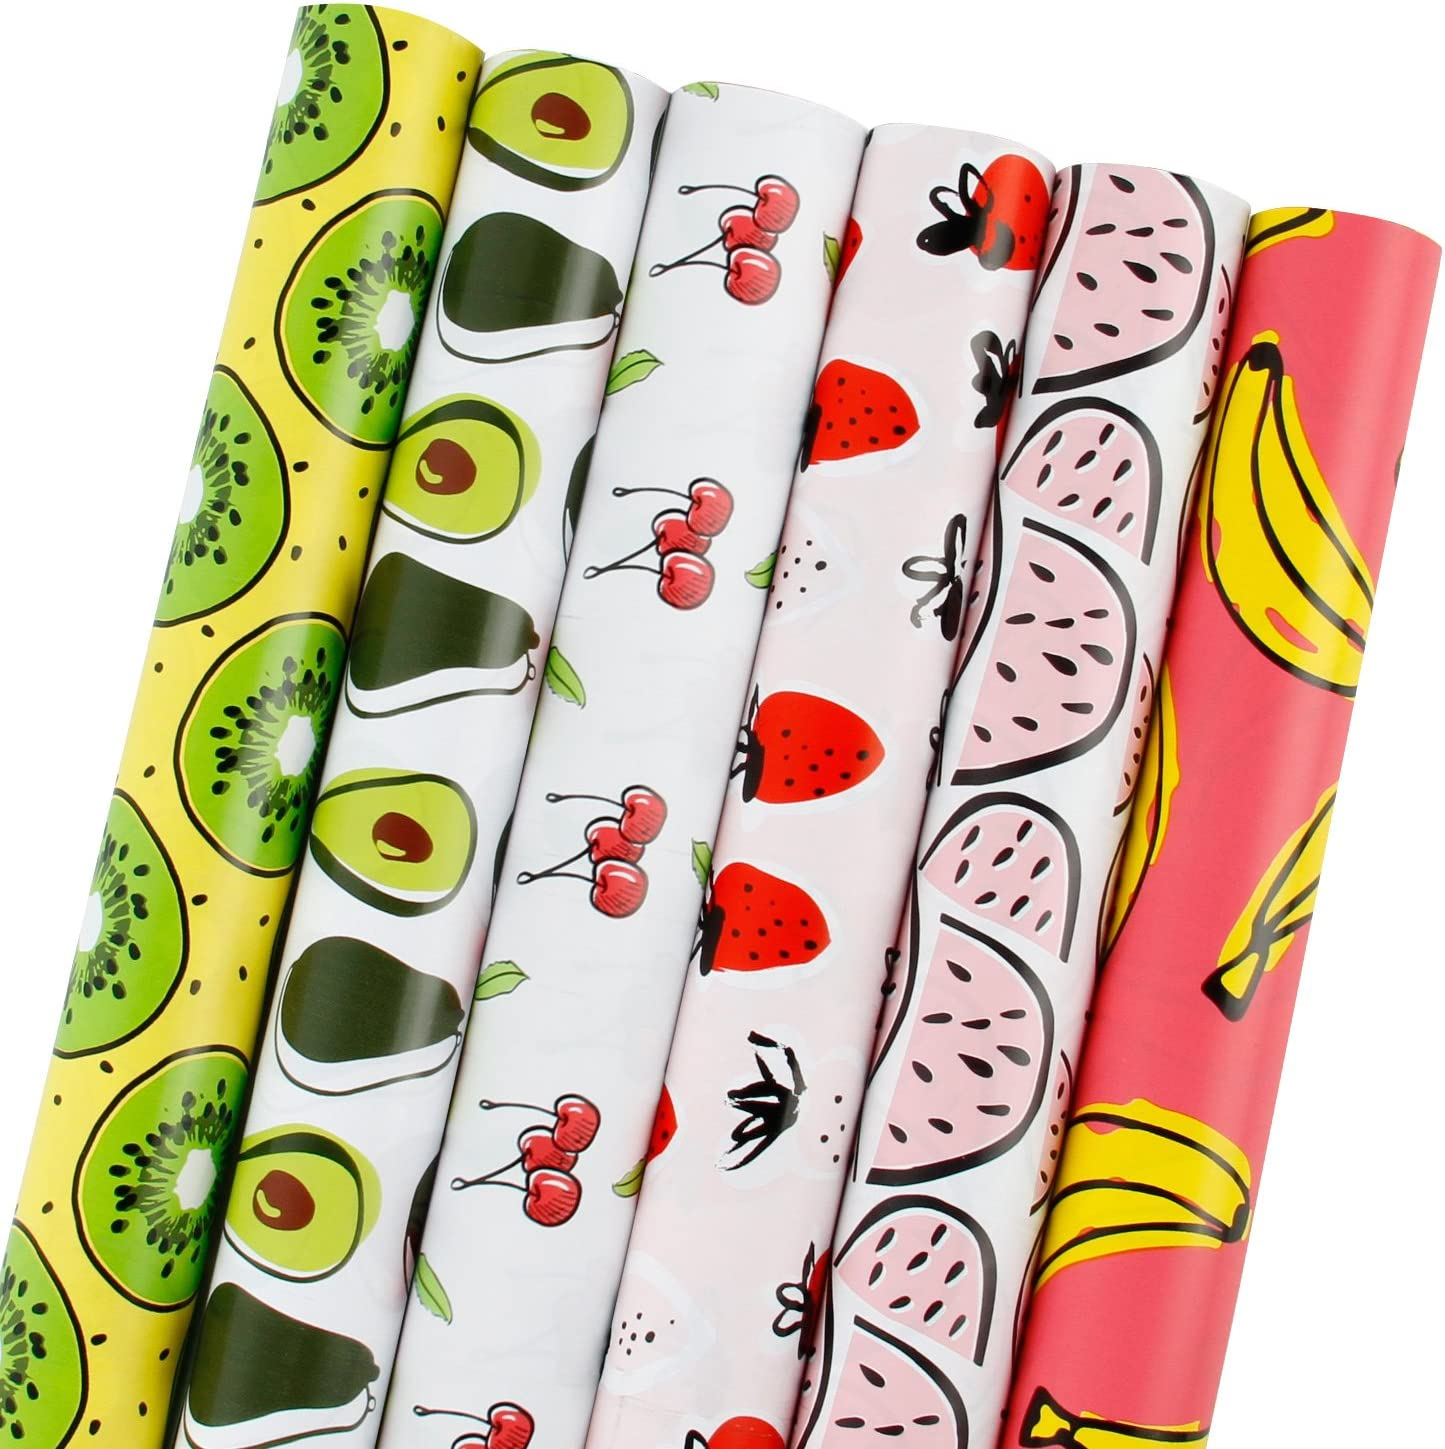 LaRibbons Fruit Wrapping Paper Roll - All Occasion Fruits for Birthdays, Wedding, Baby Showers, Mother's Day - 6 Rolls - 30 Inch X 120 Inch Per Roll